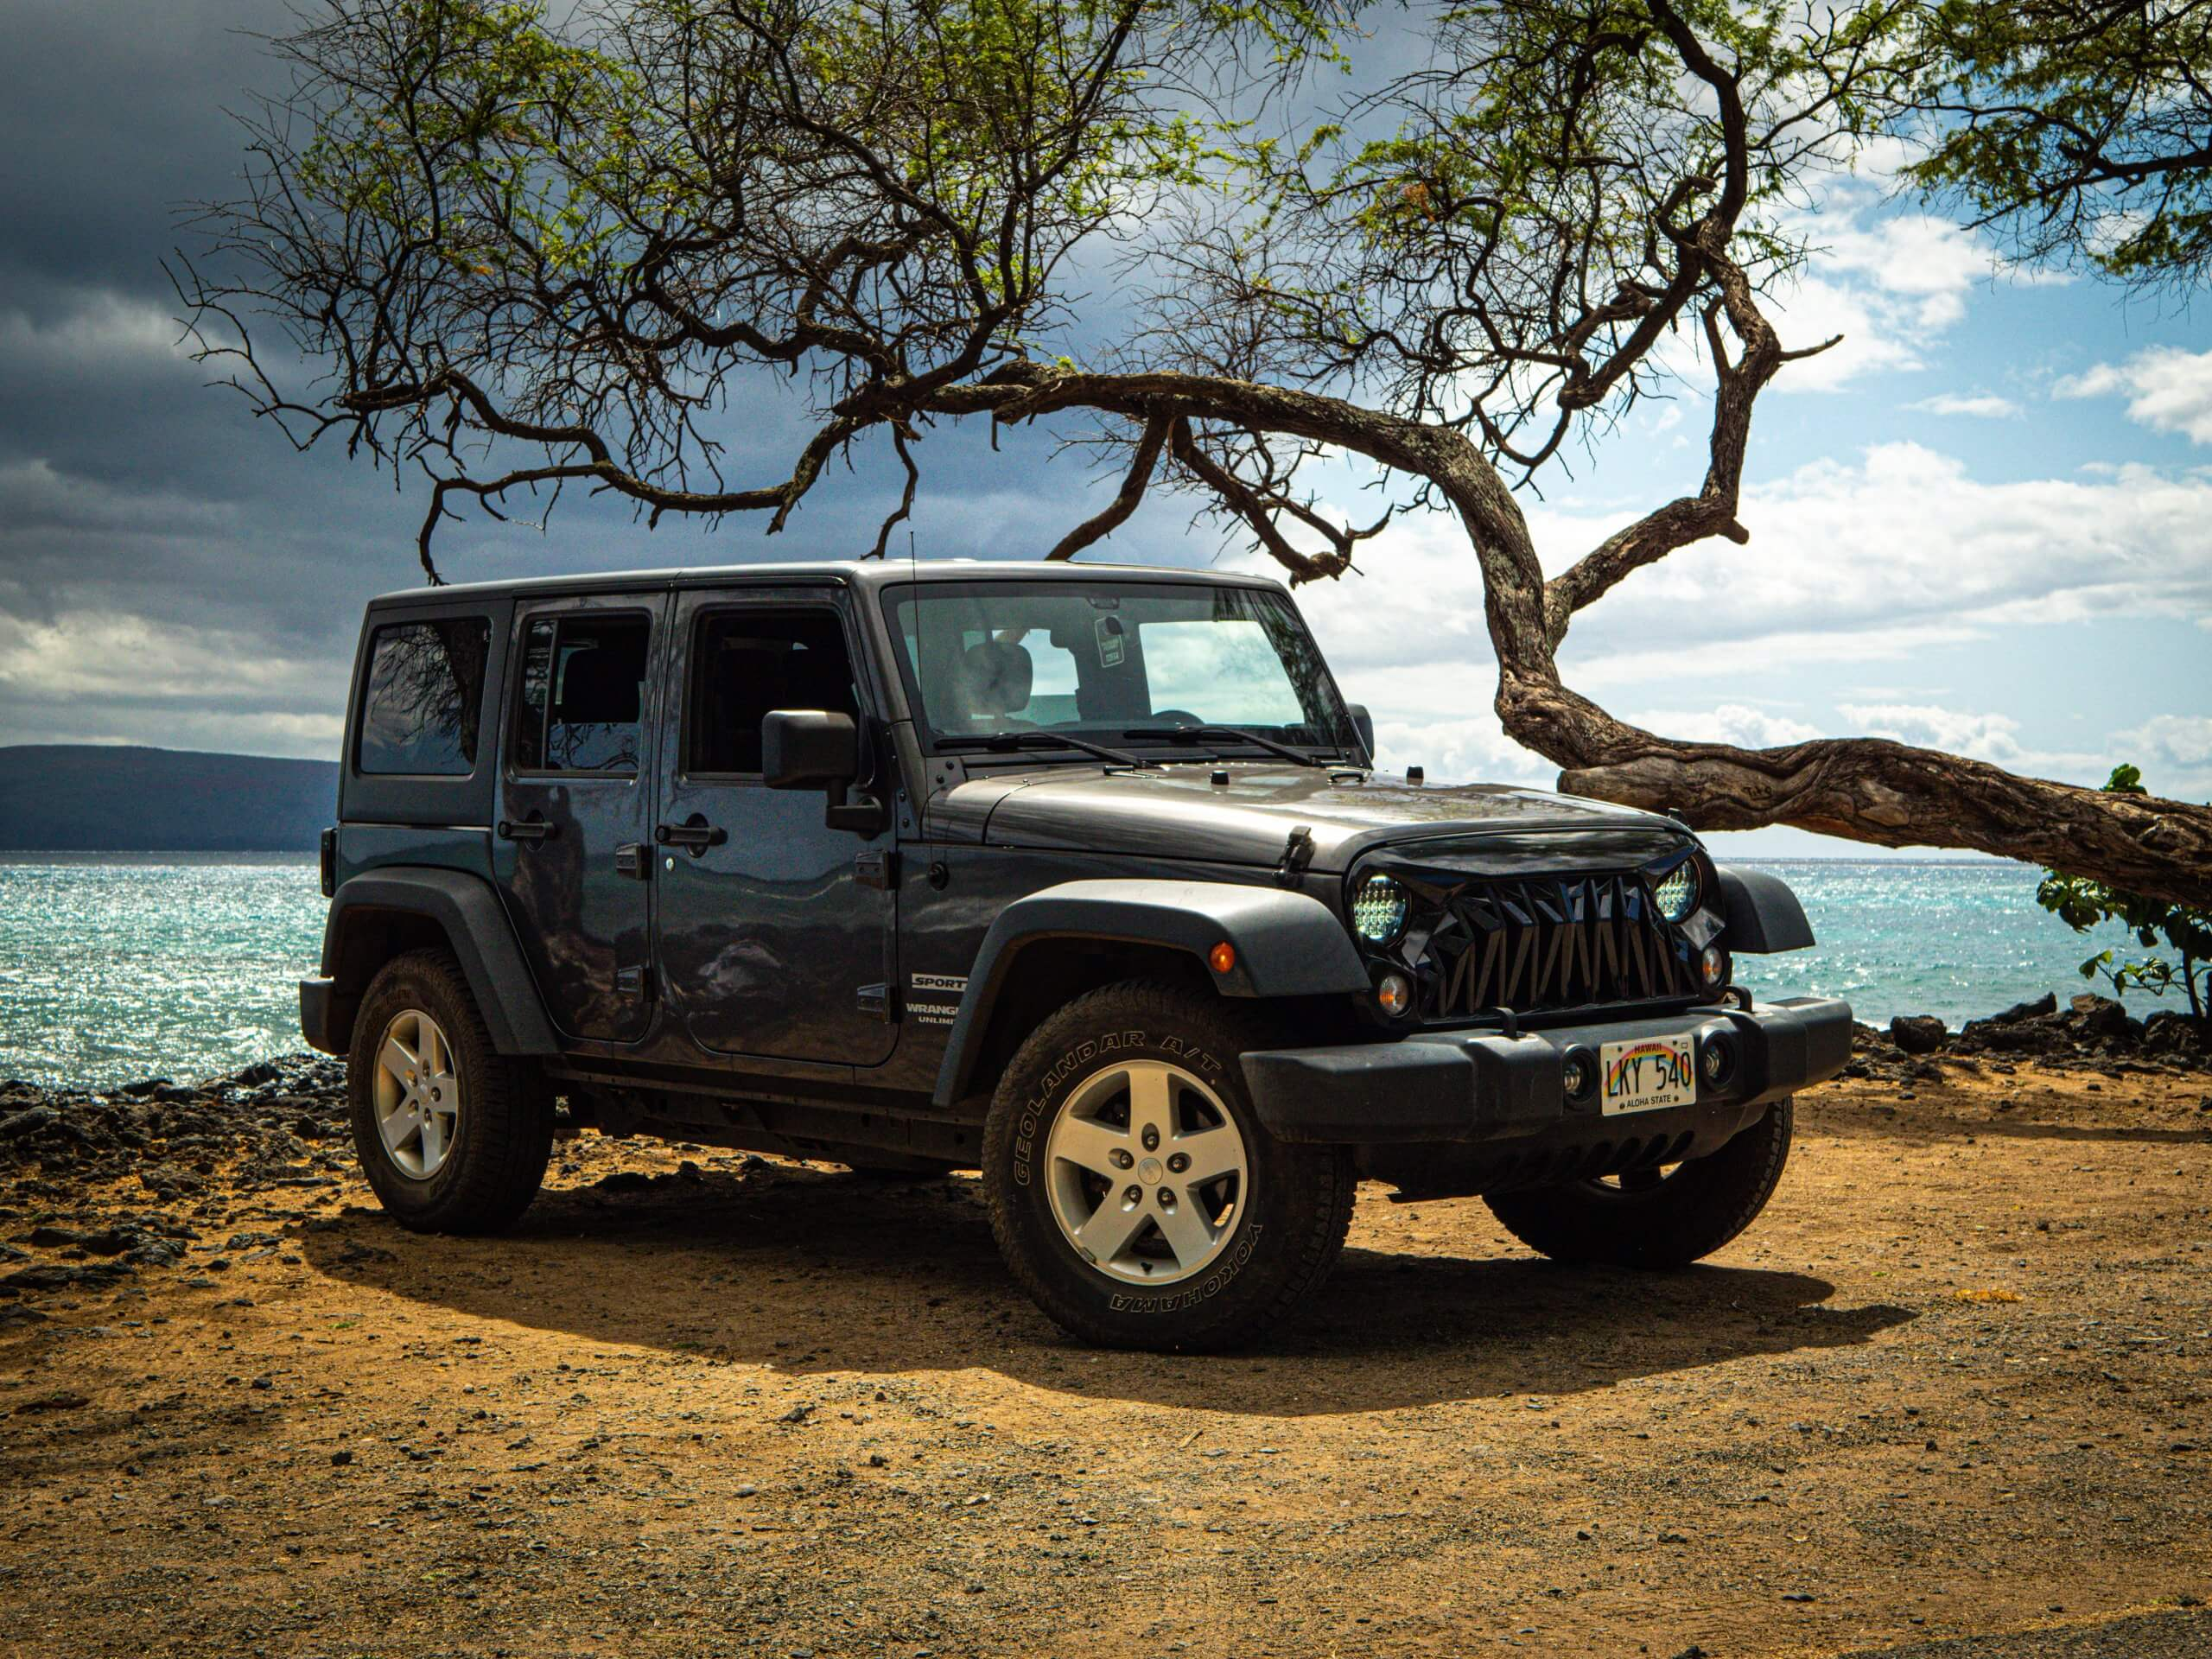 Maui Budget Cars – The Most Affordable Rental Car Company in Maui, Hawaii